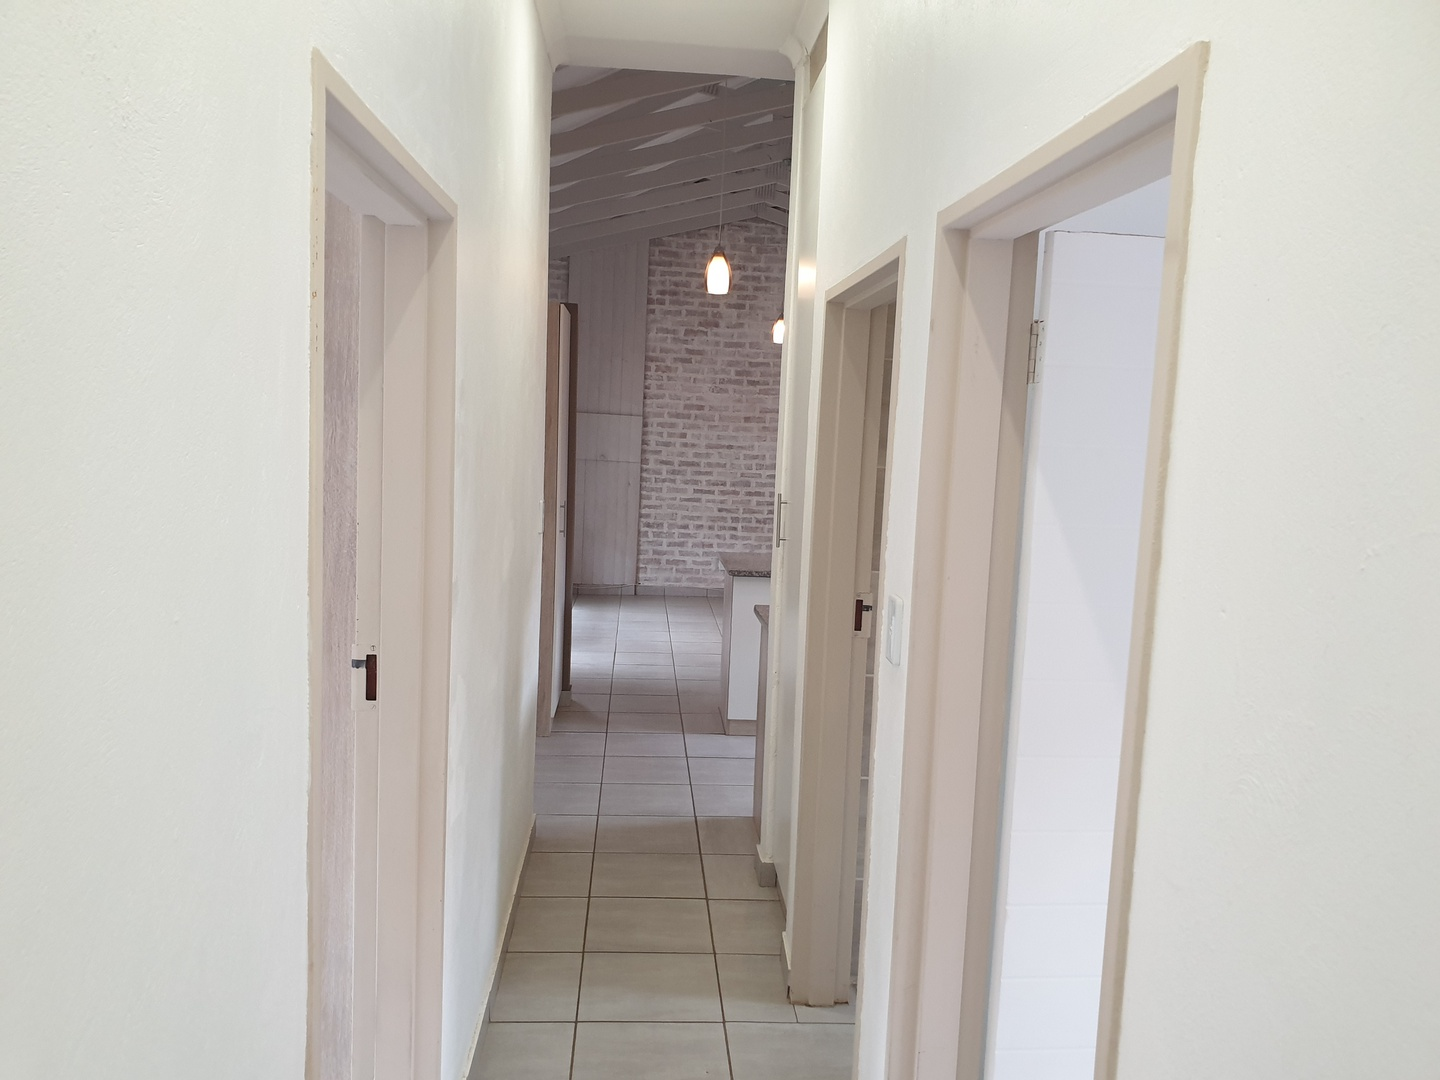 House in Bailliepark - passage